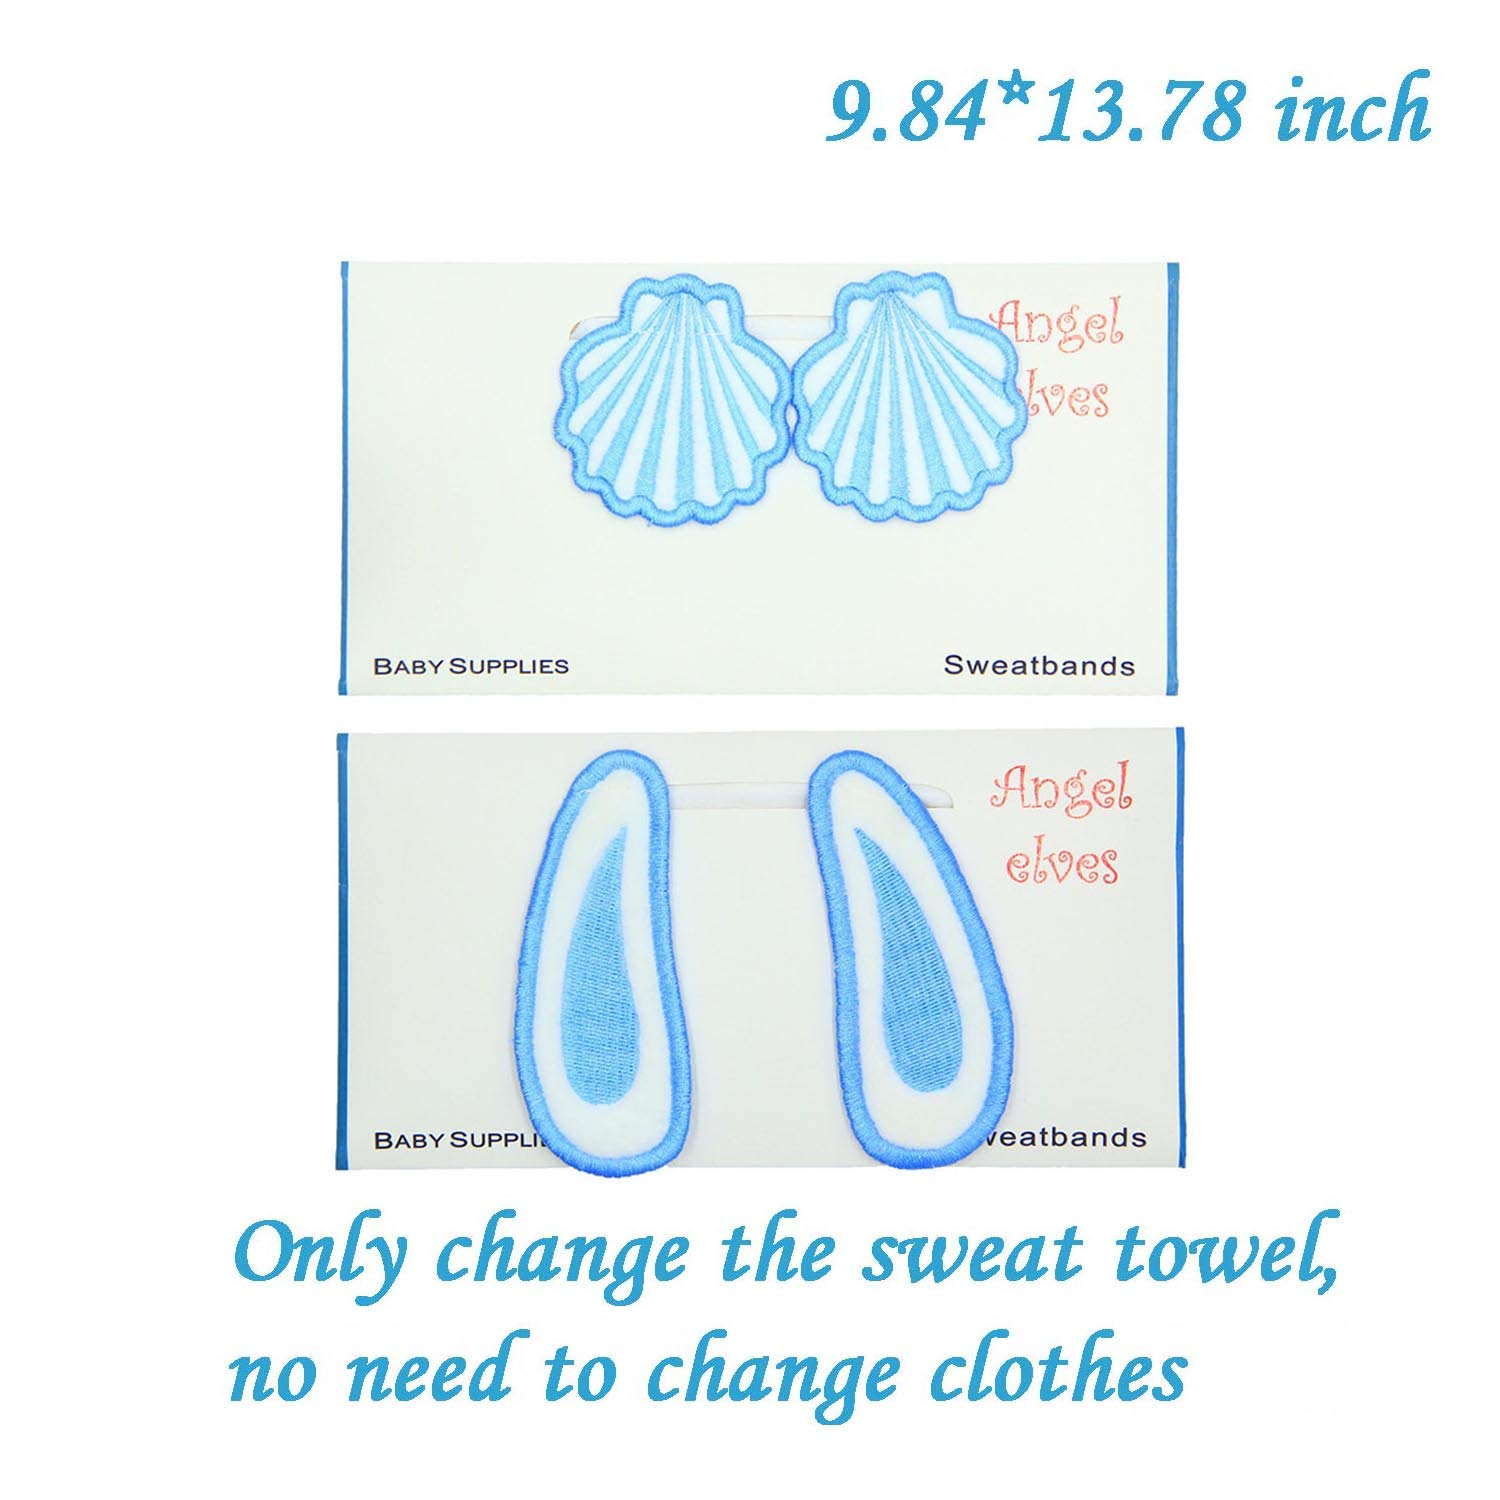 Baby Cotton Yarn Sweat Absorber Towel,Reusable Wipes Children Mattress Back Towel,Gauze Sweat Isolator Washcloths,Ultra Soft Super Absorbency Quick Dry,Cute Cartoon Design for Kids Infant Toddler